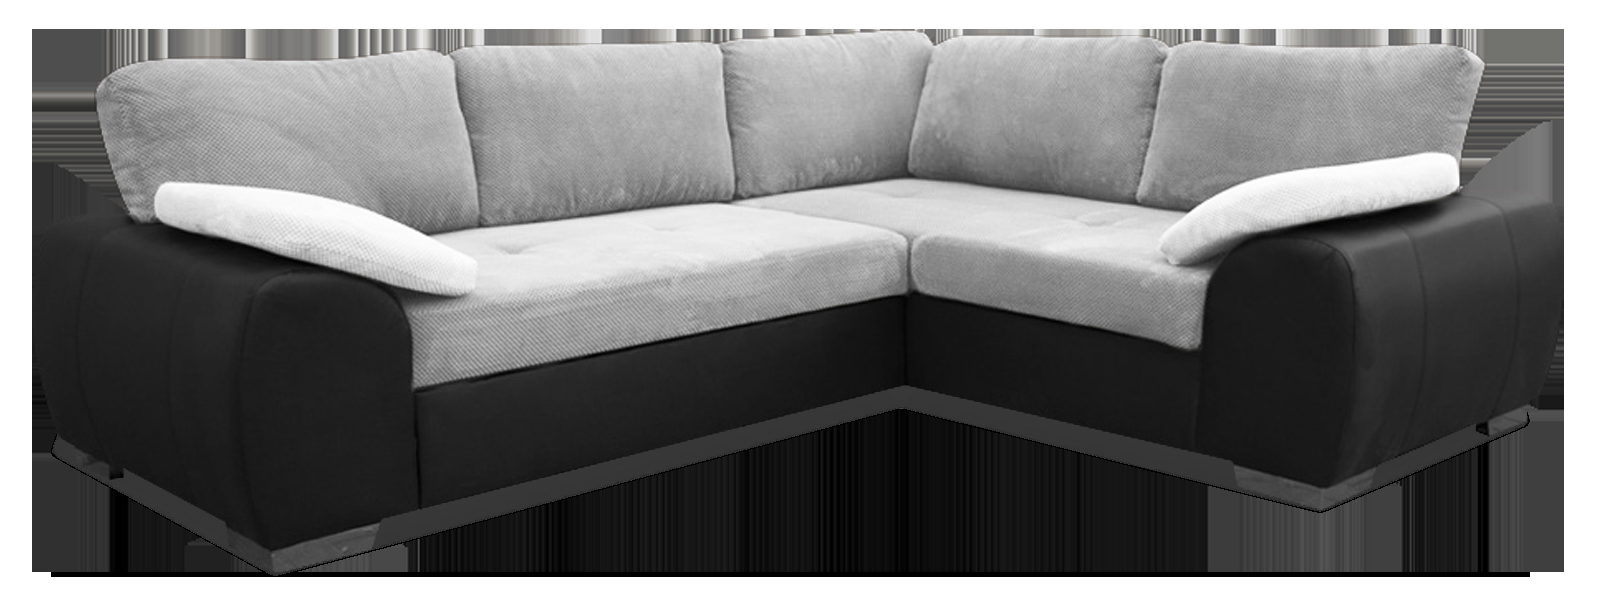 Madrid 2CR1 Right Corner Sofa Bed Black and Silver PU